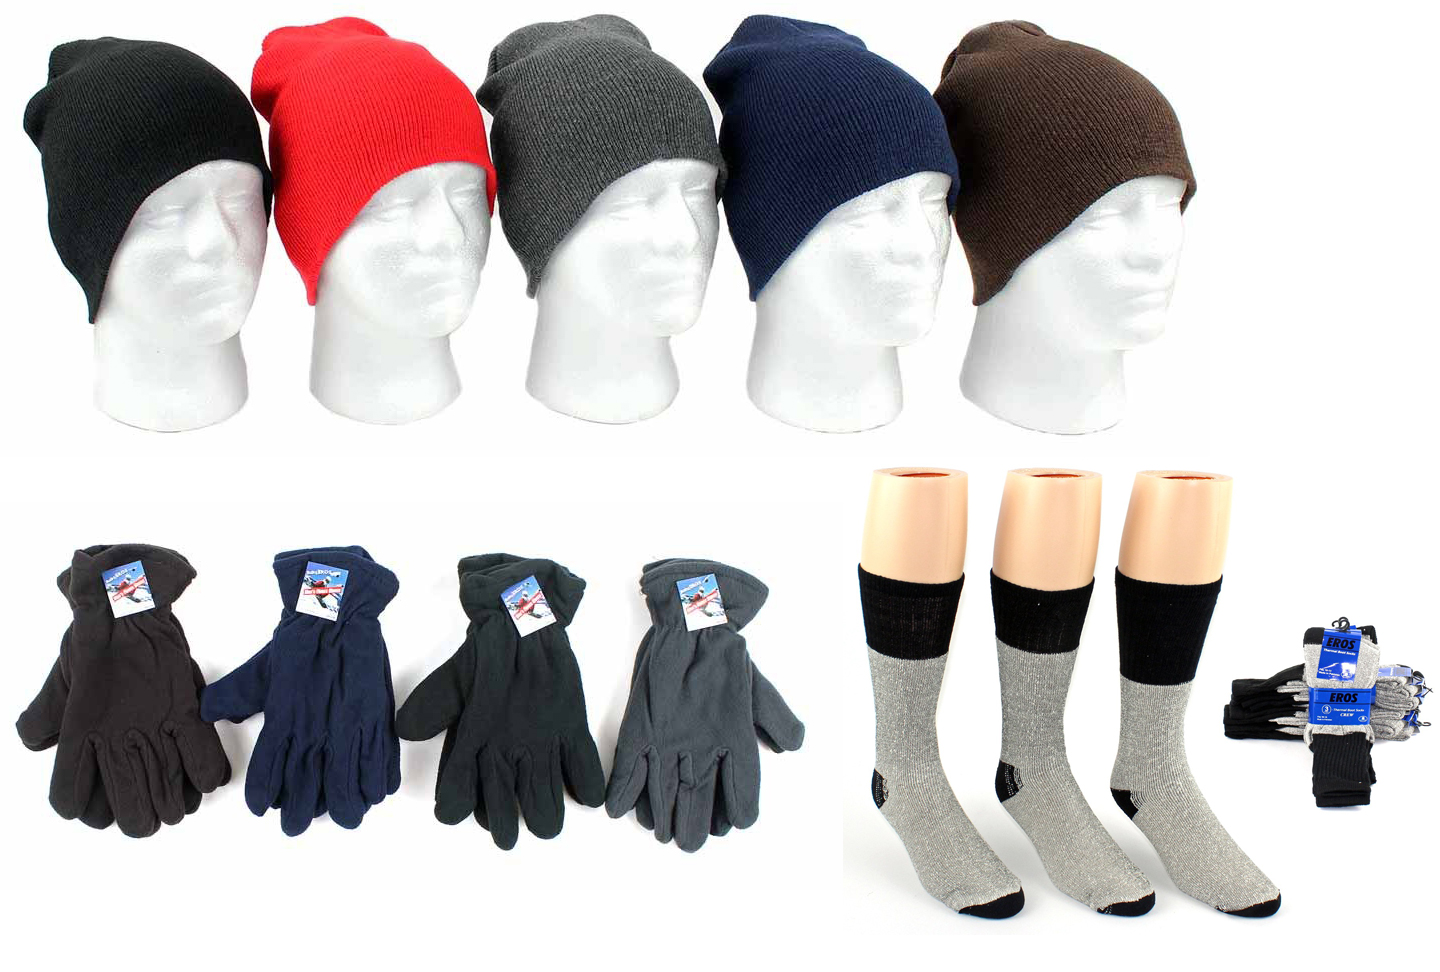 4b8f9a365cd Wholesale Socks now available at Wholesale Central - Items 321 - 360